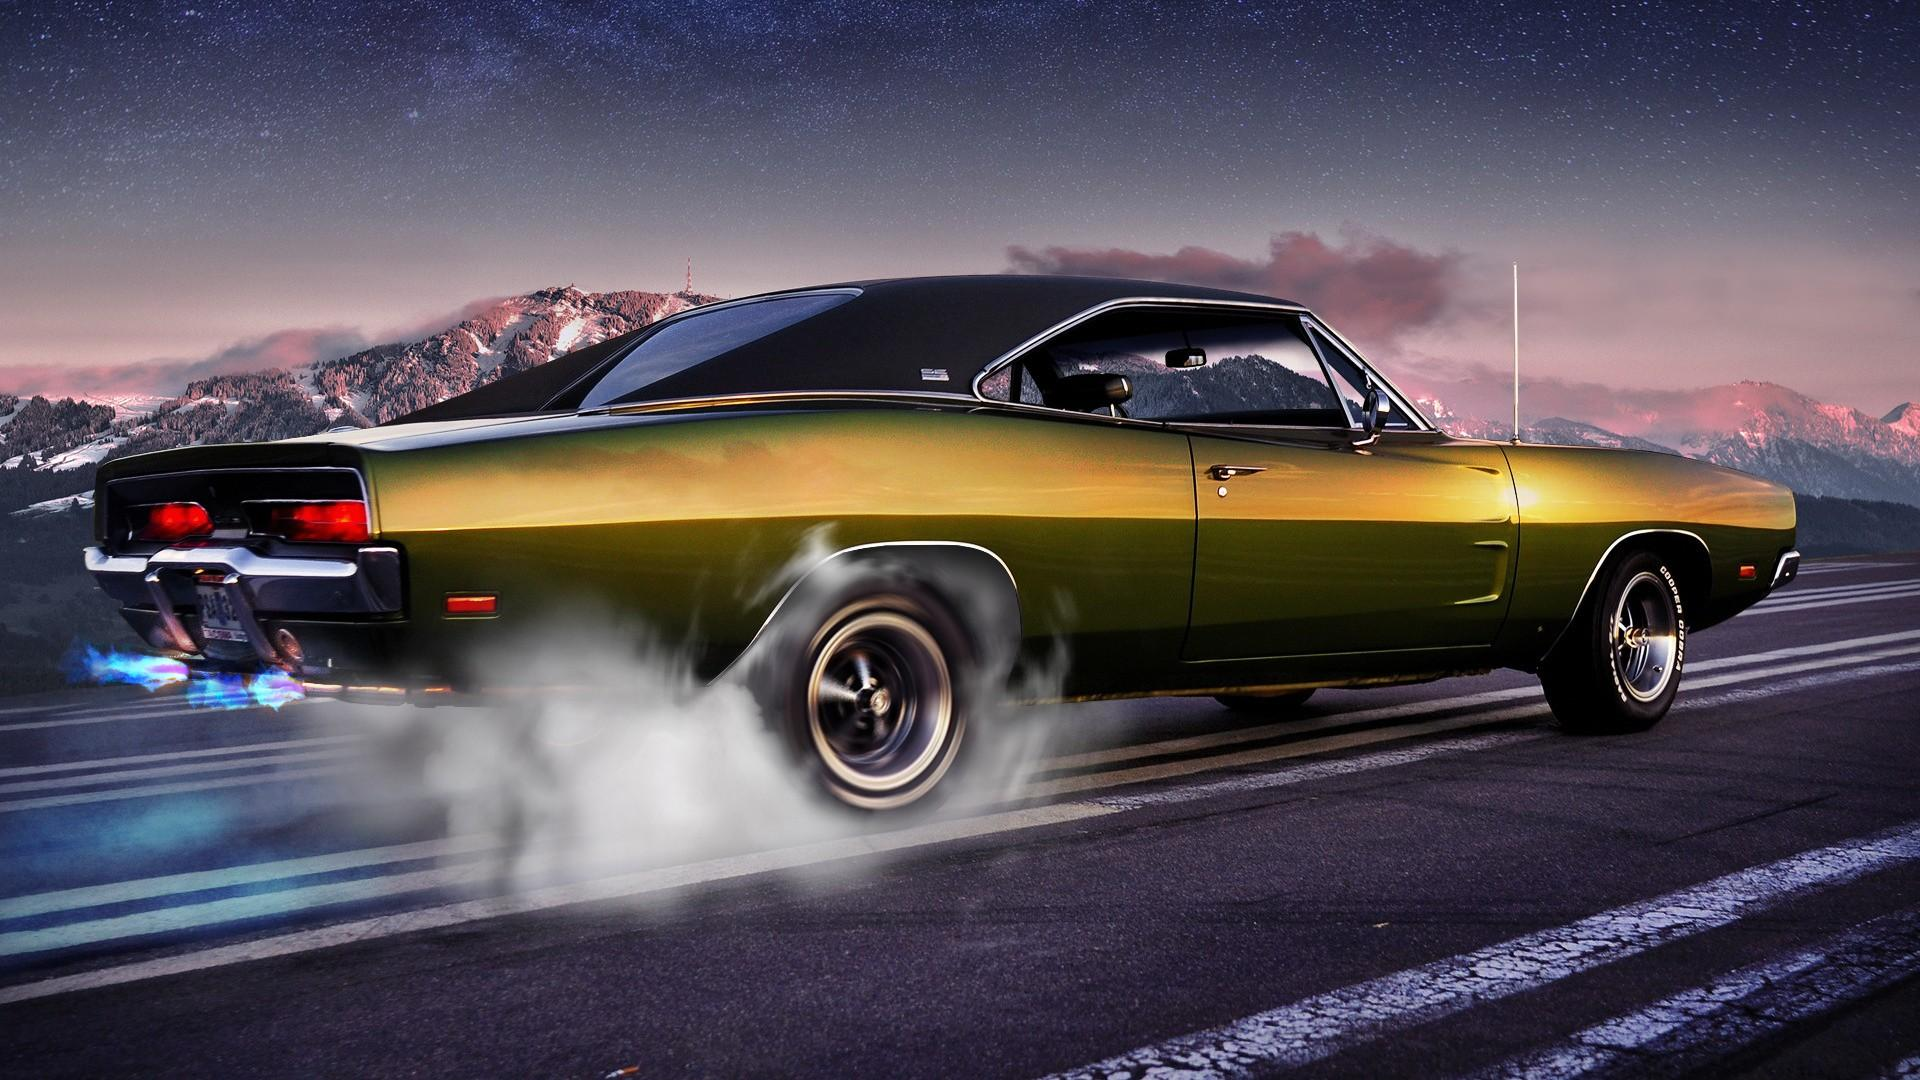 Old Muscle Car HD Wallpapers 5300   HD Wallpapers Site 1920x1080